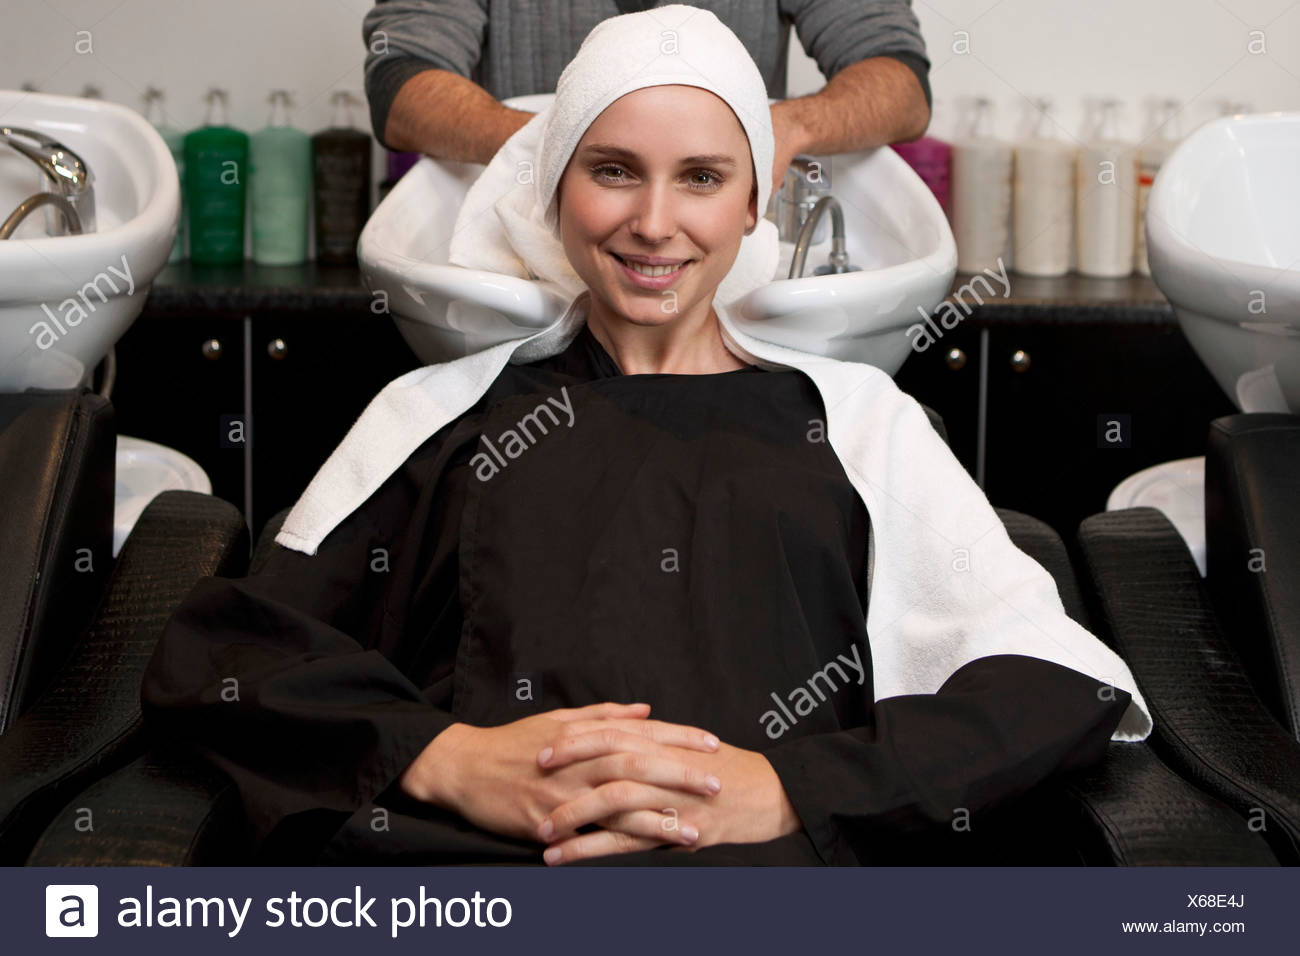 A female client sitting at a wash basin in a hairdressing salon - Stock Image